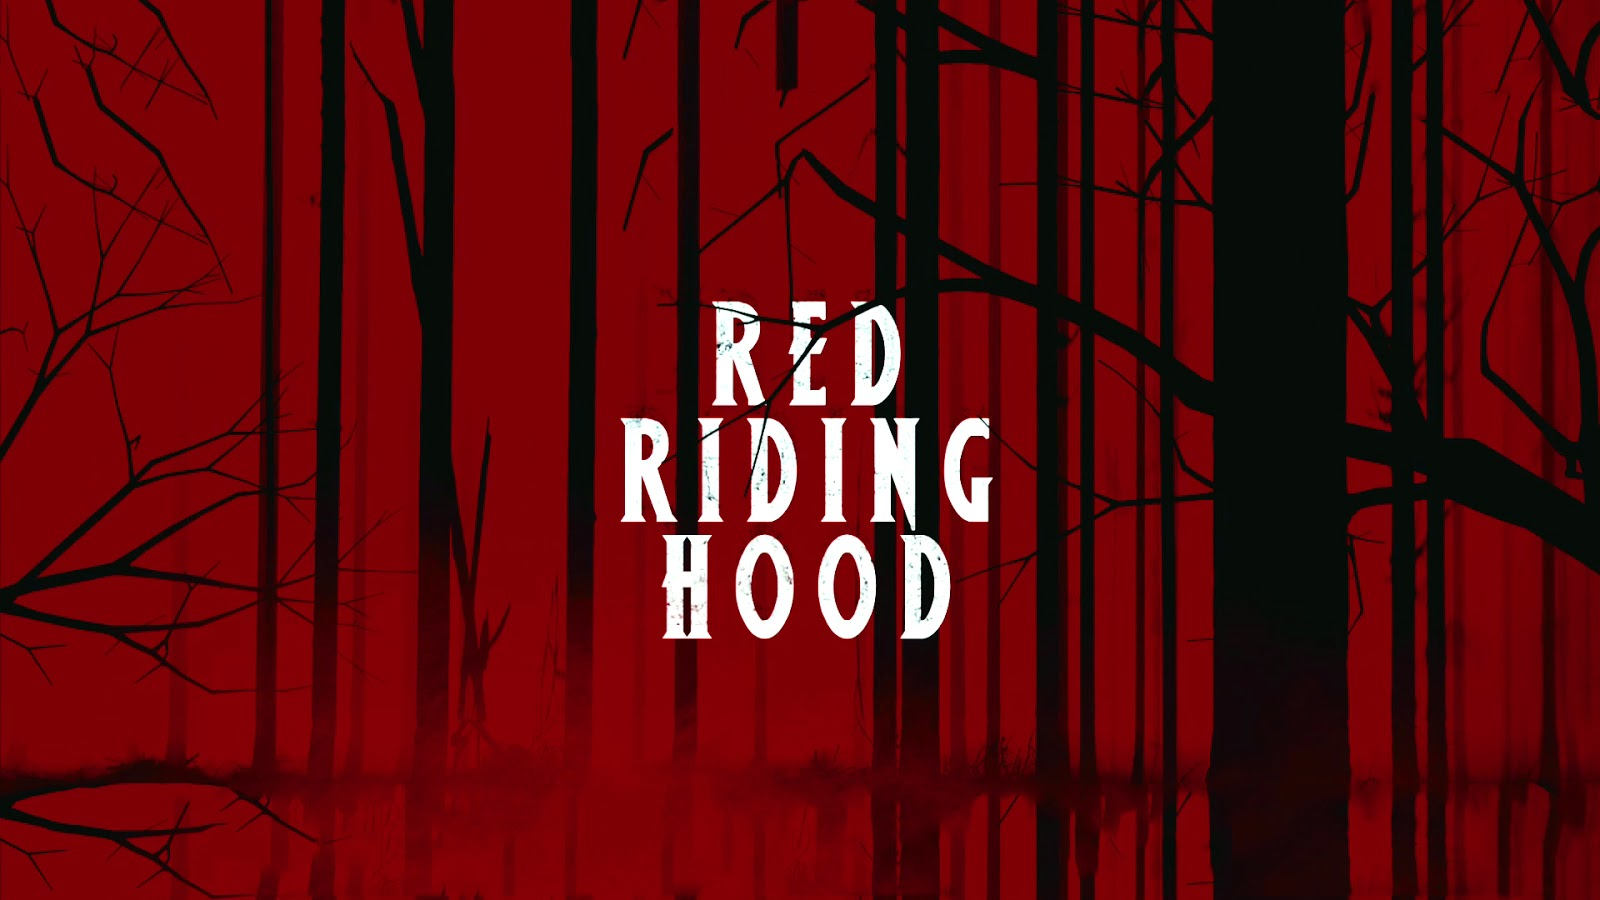 red riging hood